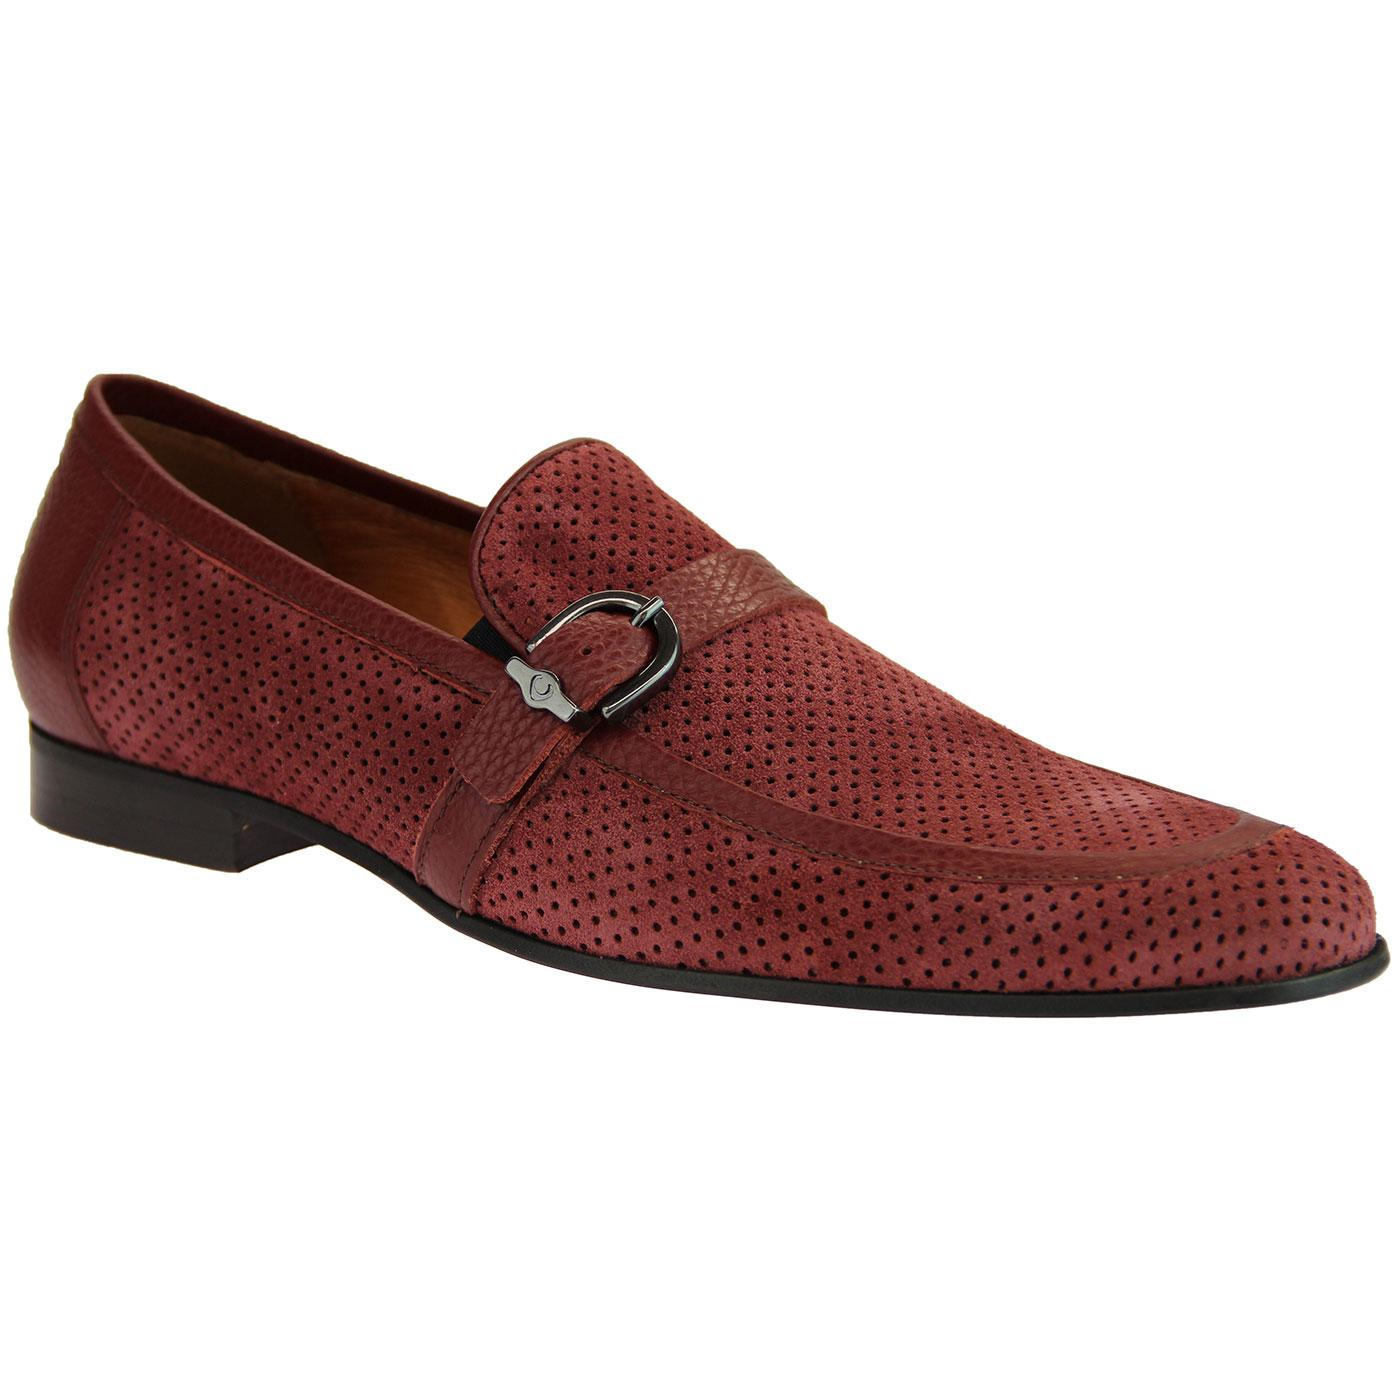 LACUZZO Mens 60s Mod Perforated Suede Loafers C